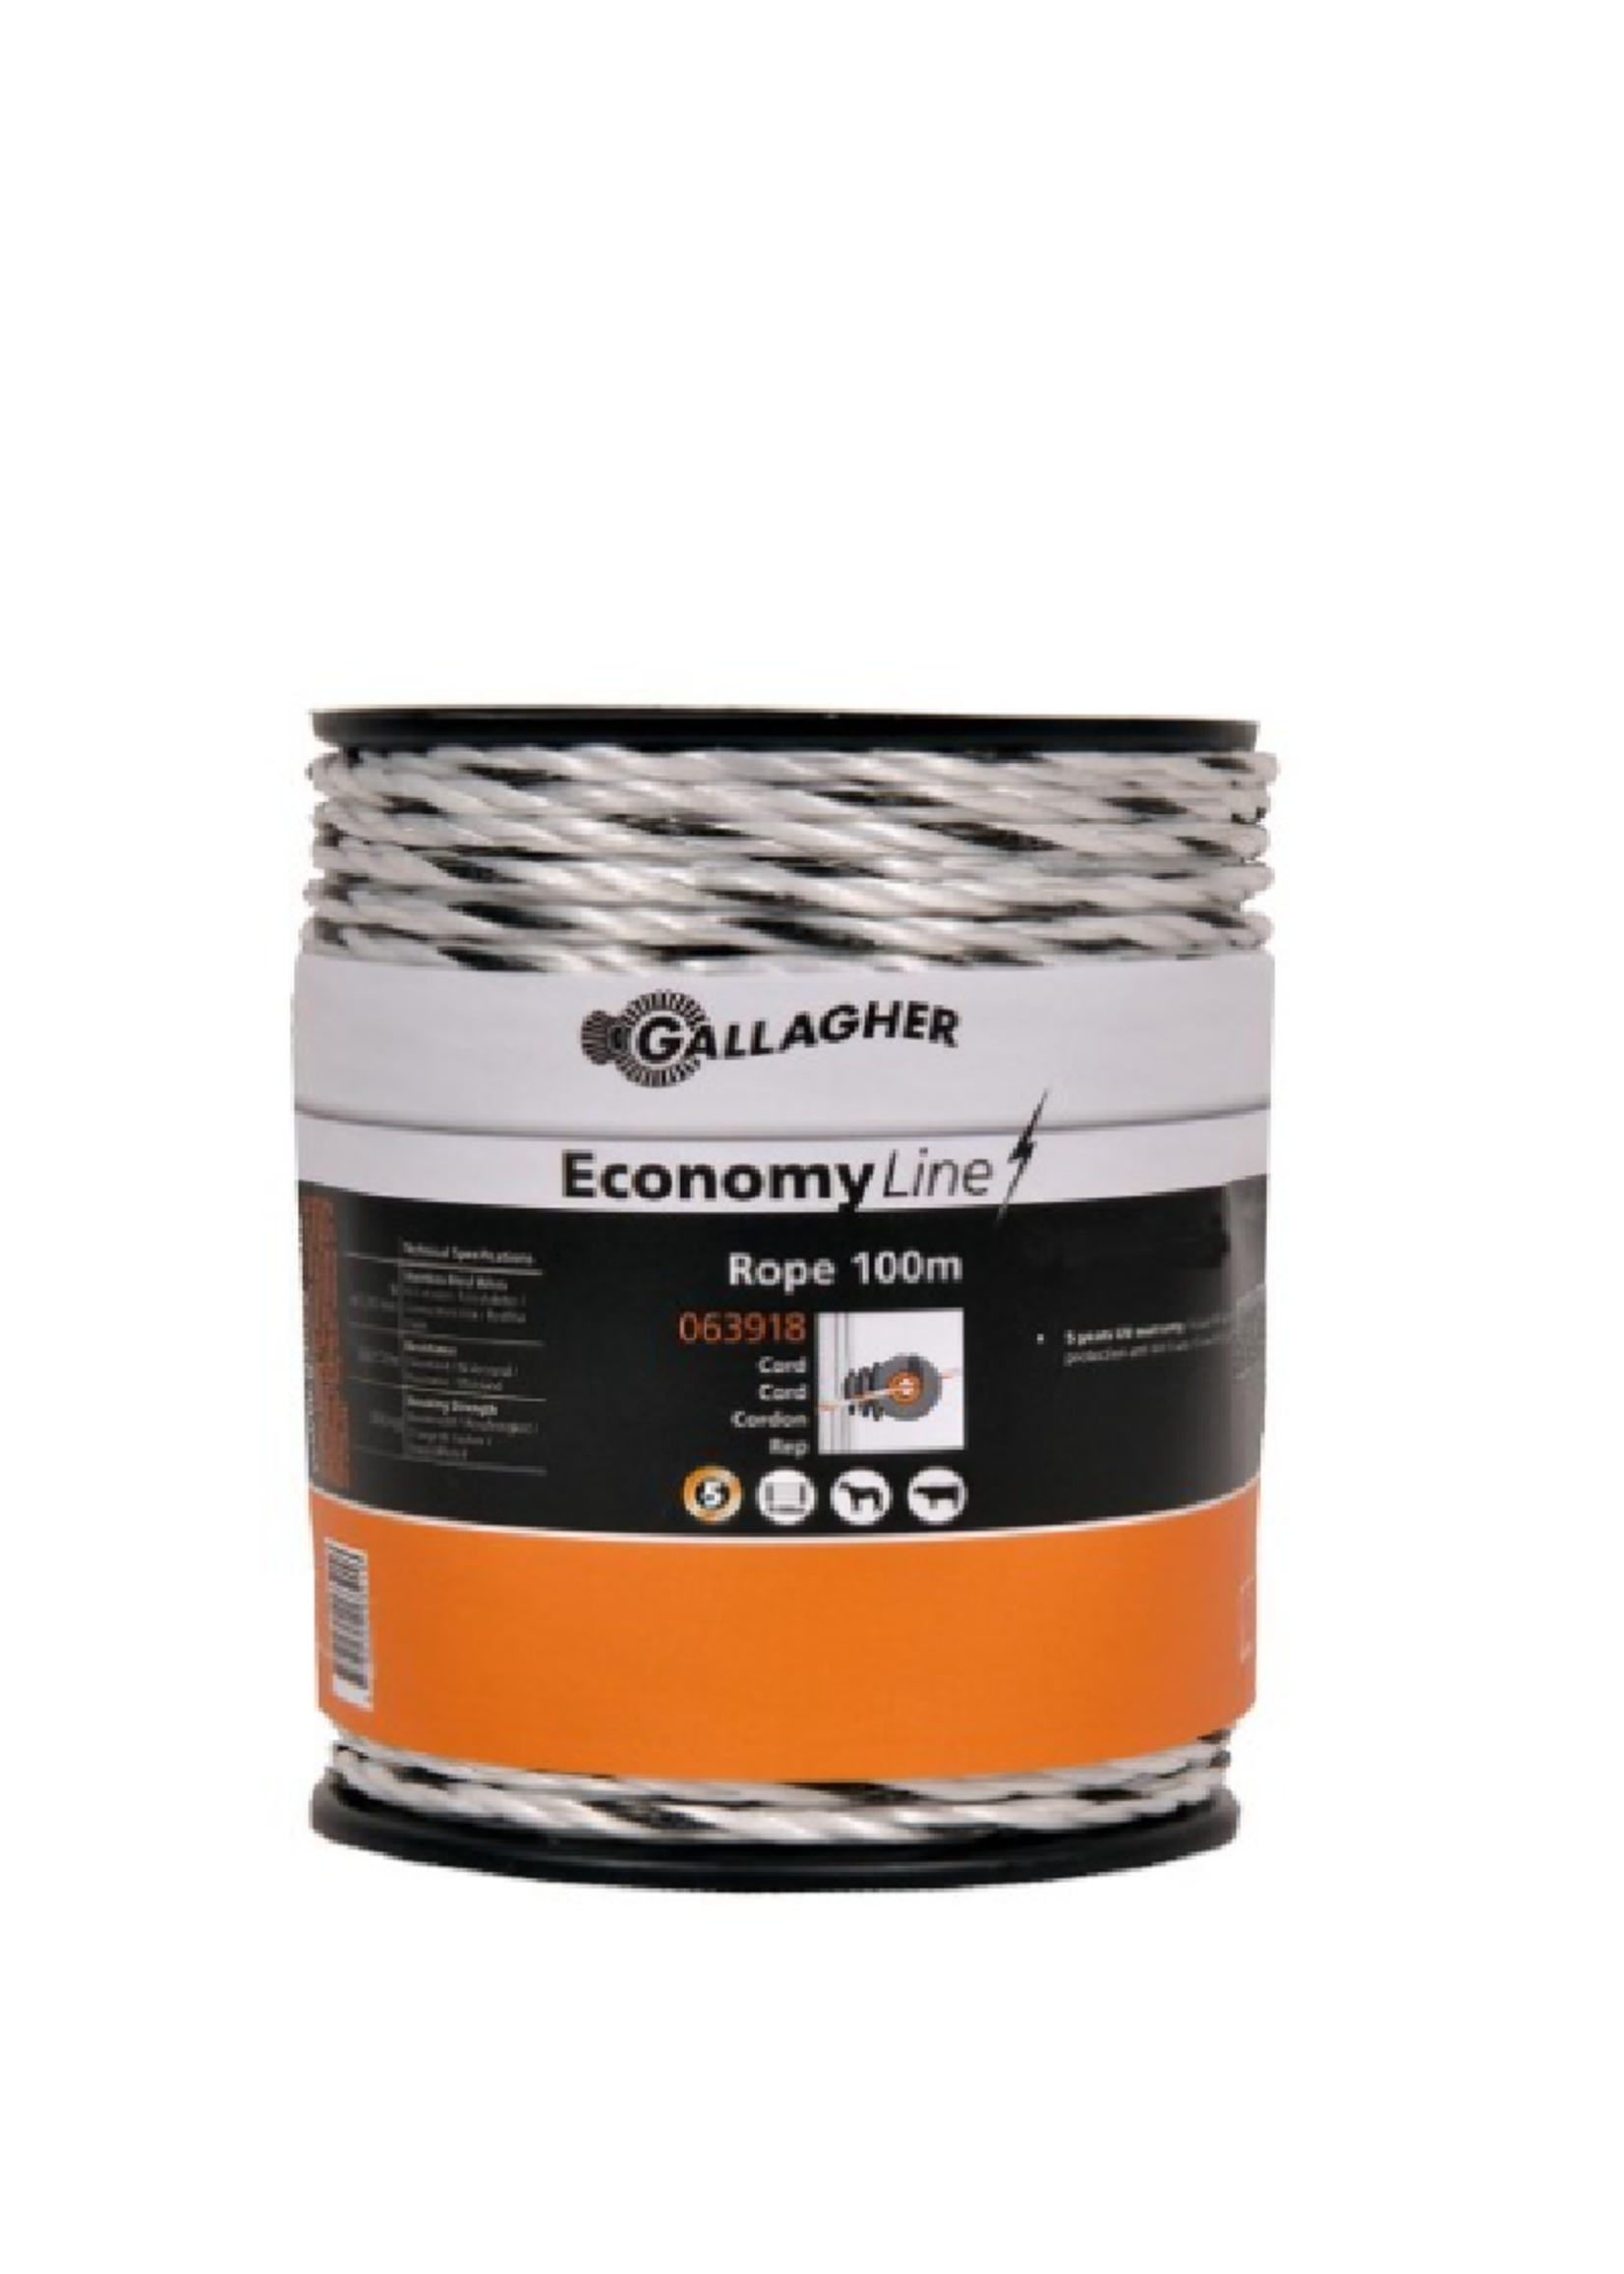 Gallagher Gallagher Economy Line draad) 100m Wit